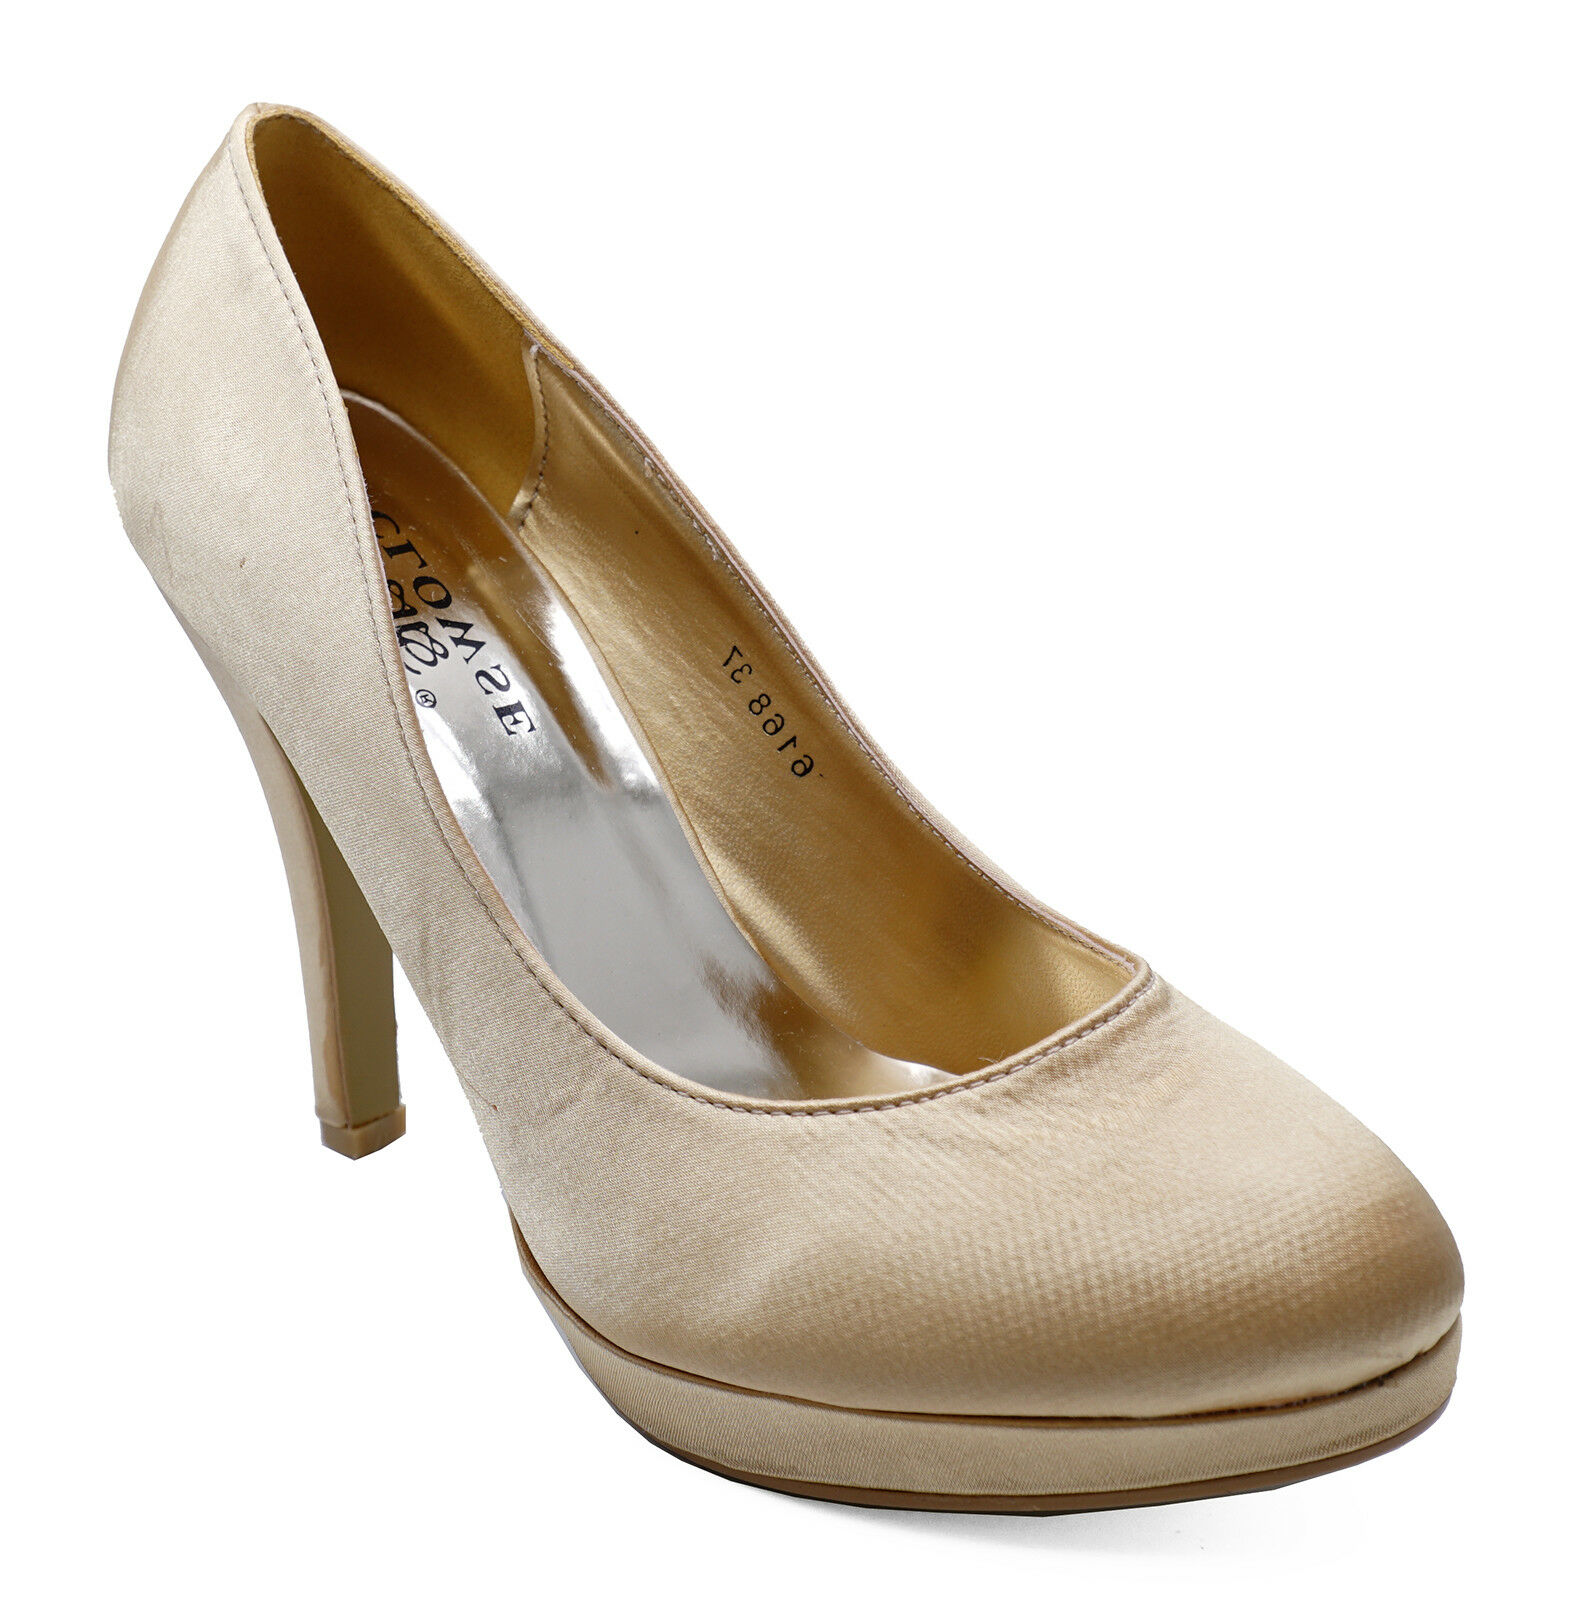 WOMENS DARK GOLD SATIN BRIDAL BRIDESMAID PROM WEDDING PARTY COURT SHOES SIZE 3-8